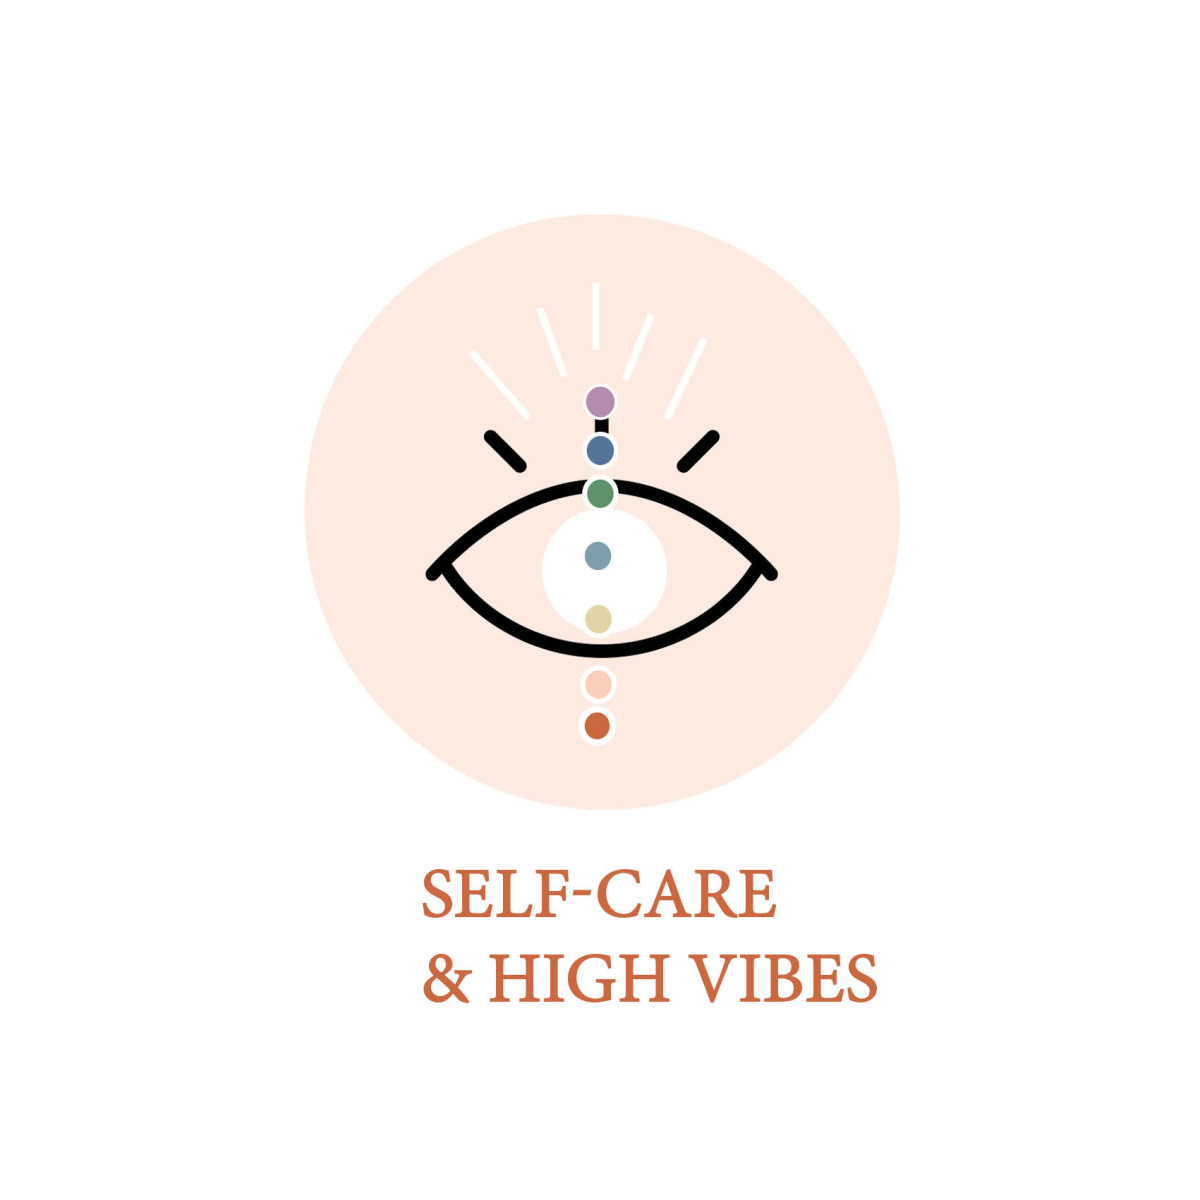 Self-care and high vibes Kundalini yoga online spiritual membership